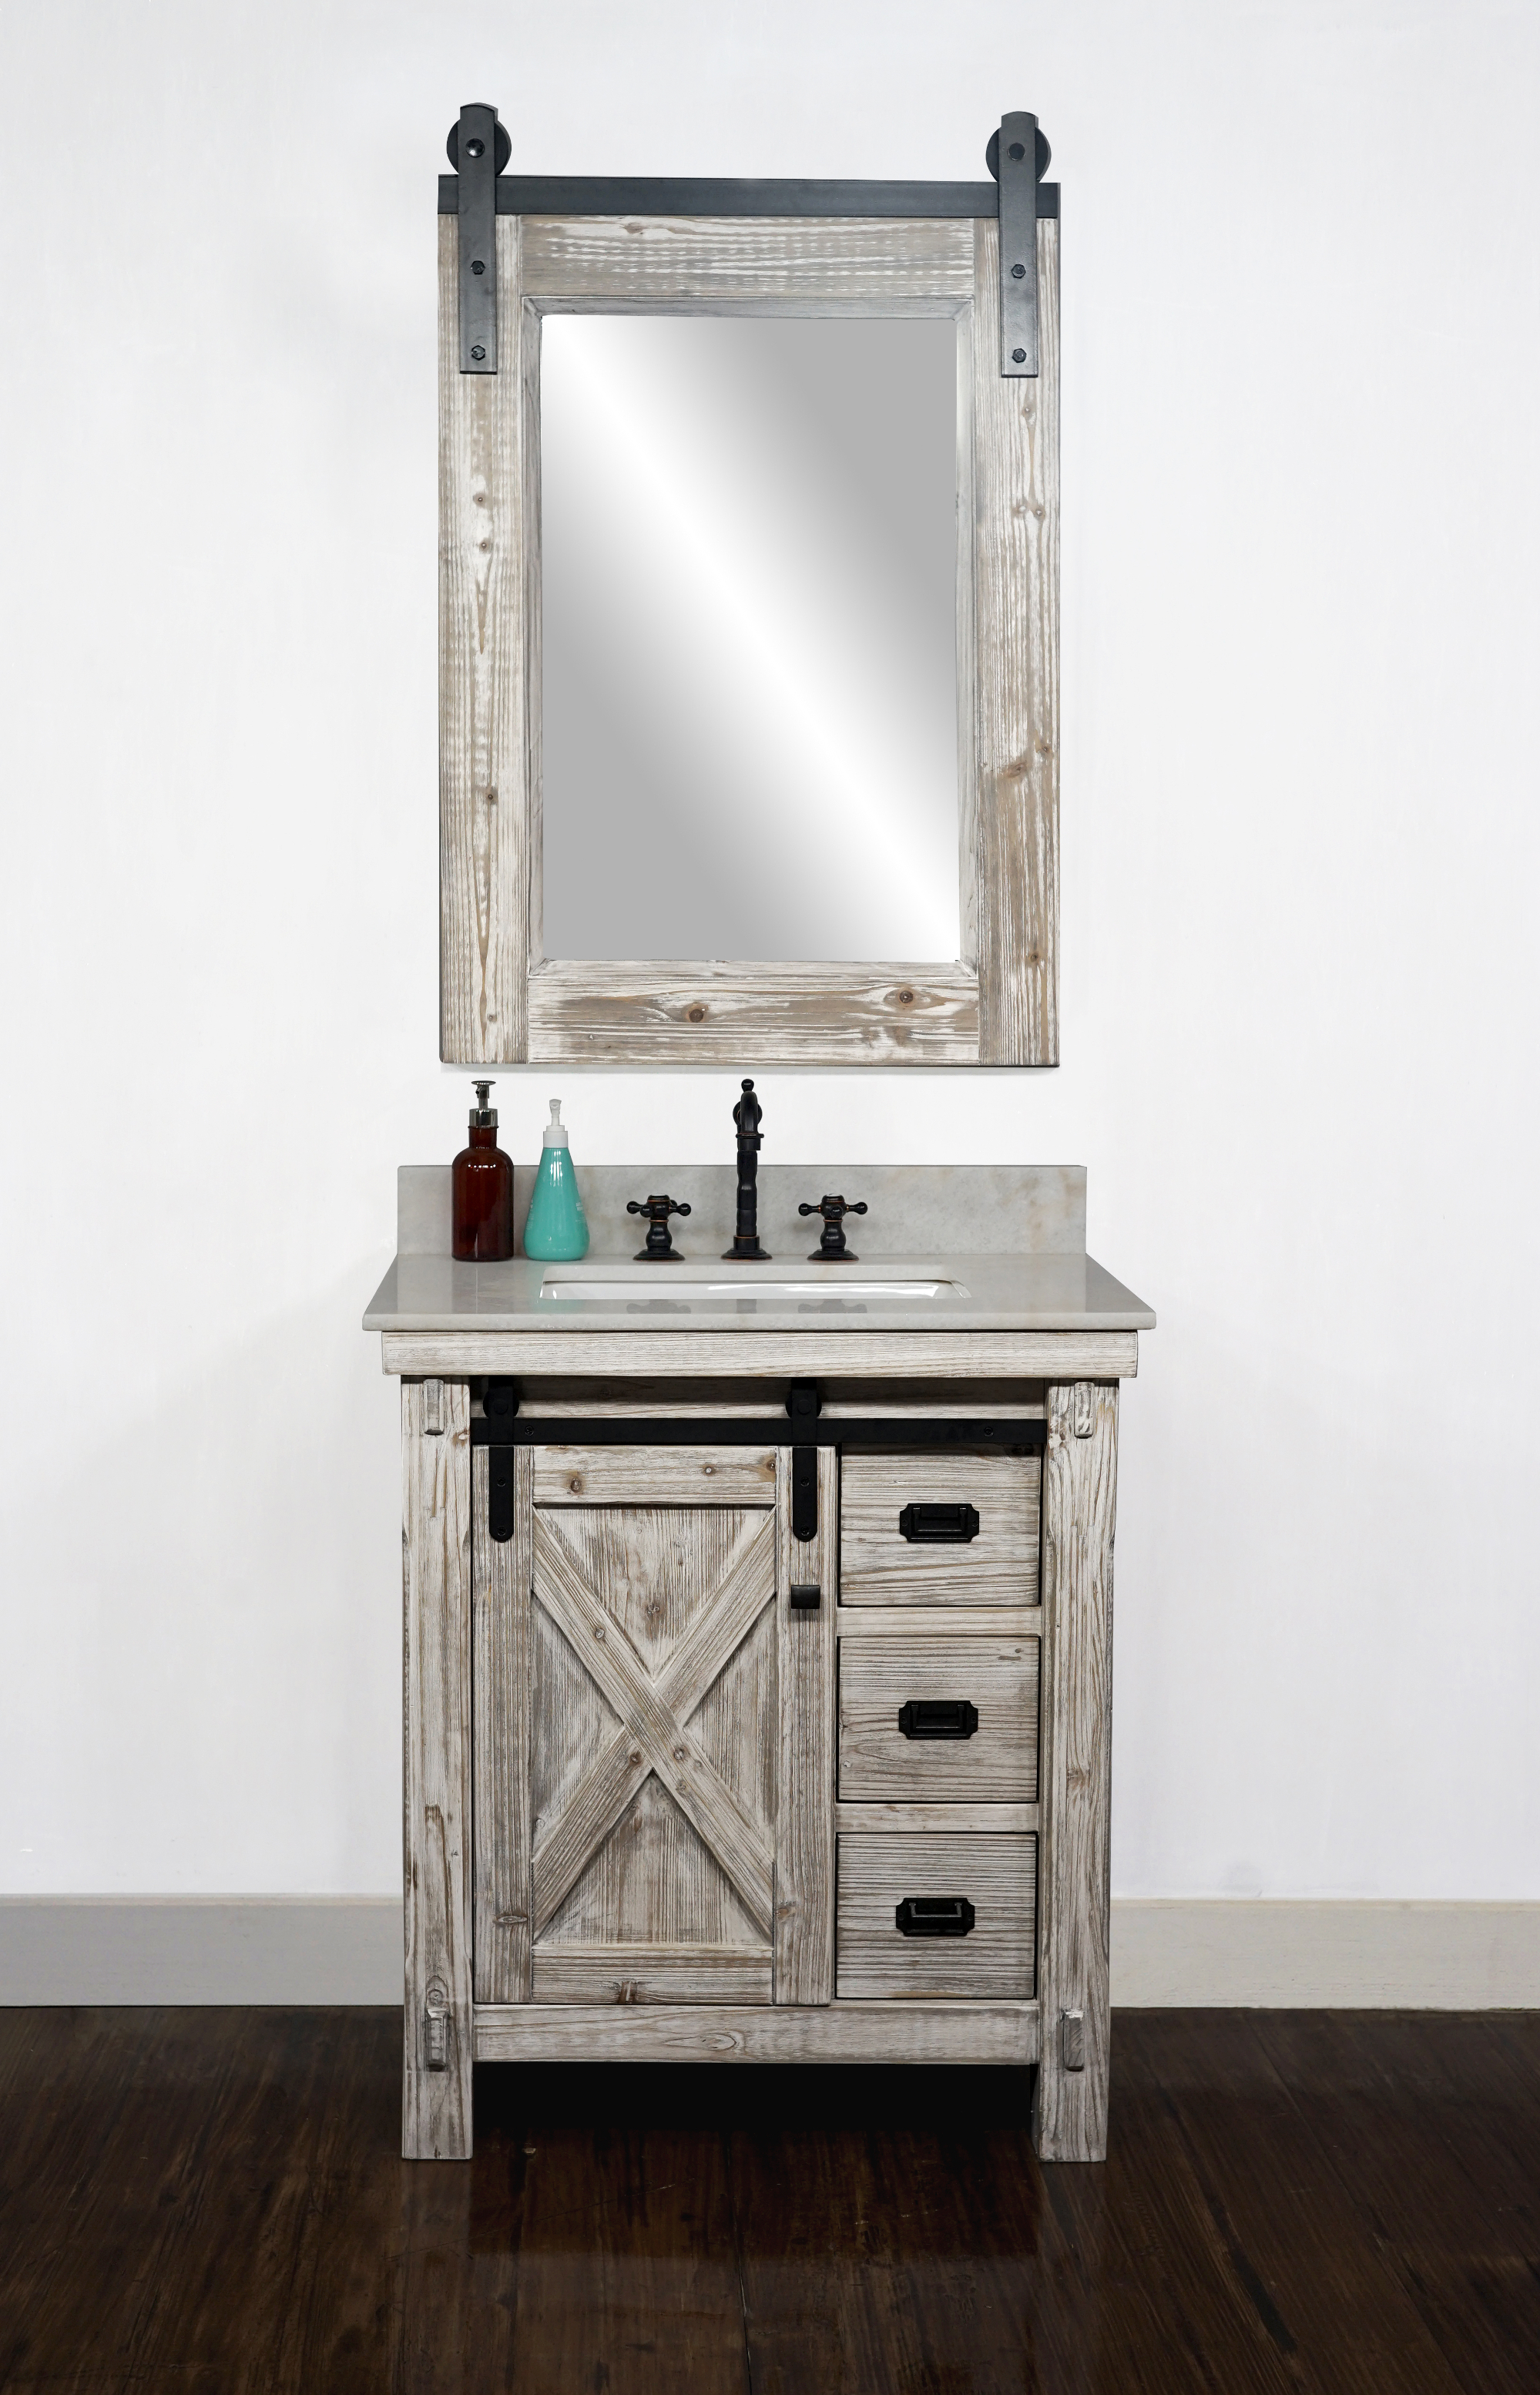 """30"""" Rustic Solid Fir Barn Door Style Single Sink Vanity in White Washed - No Faucet with Countertop Options"""